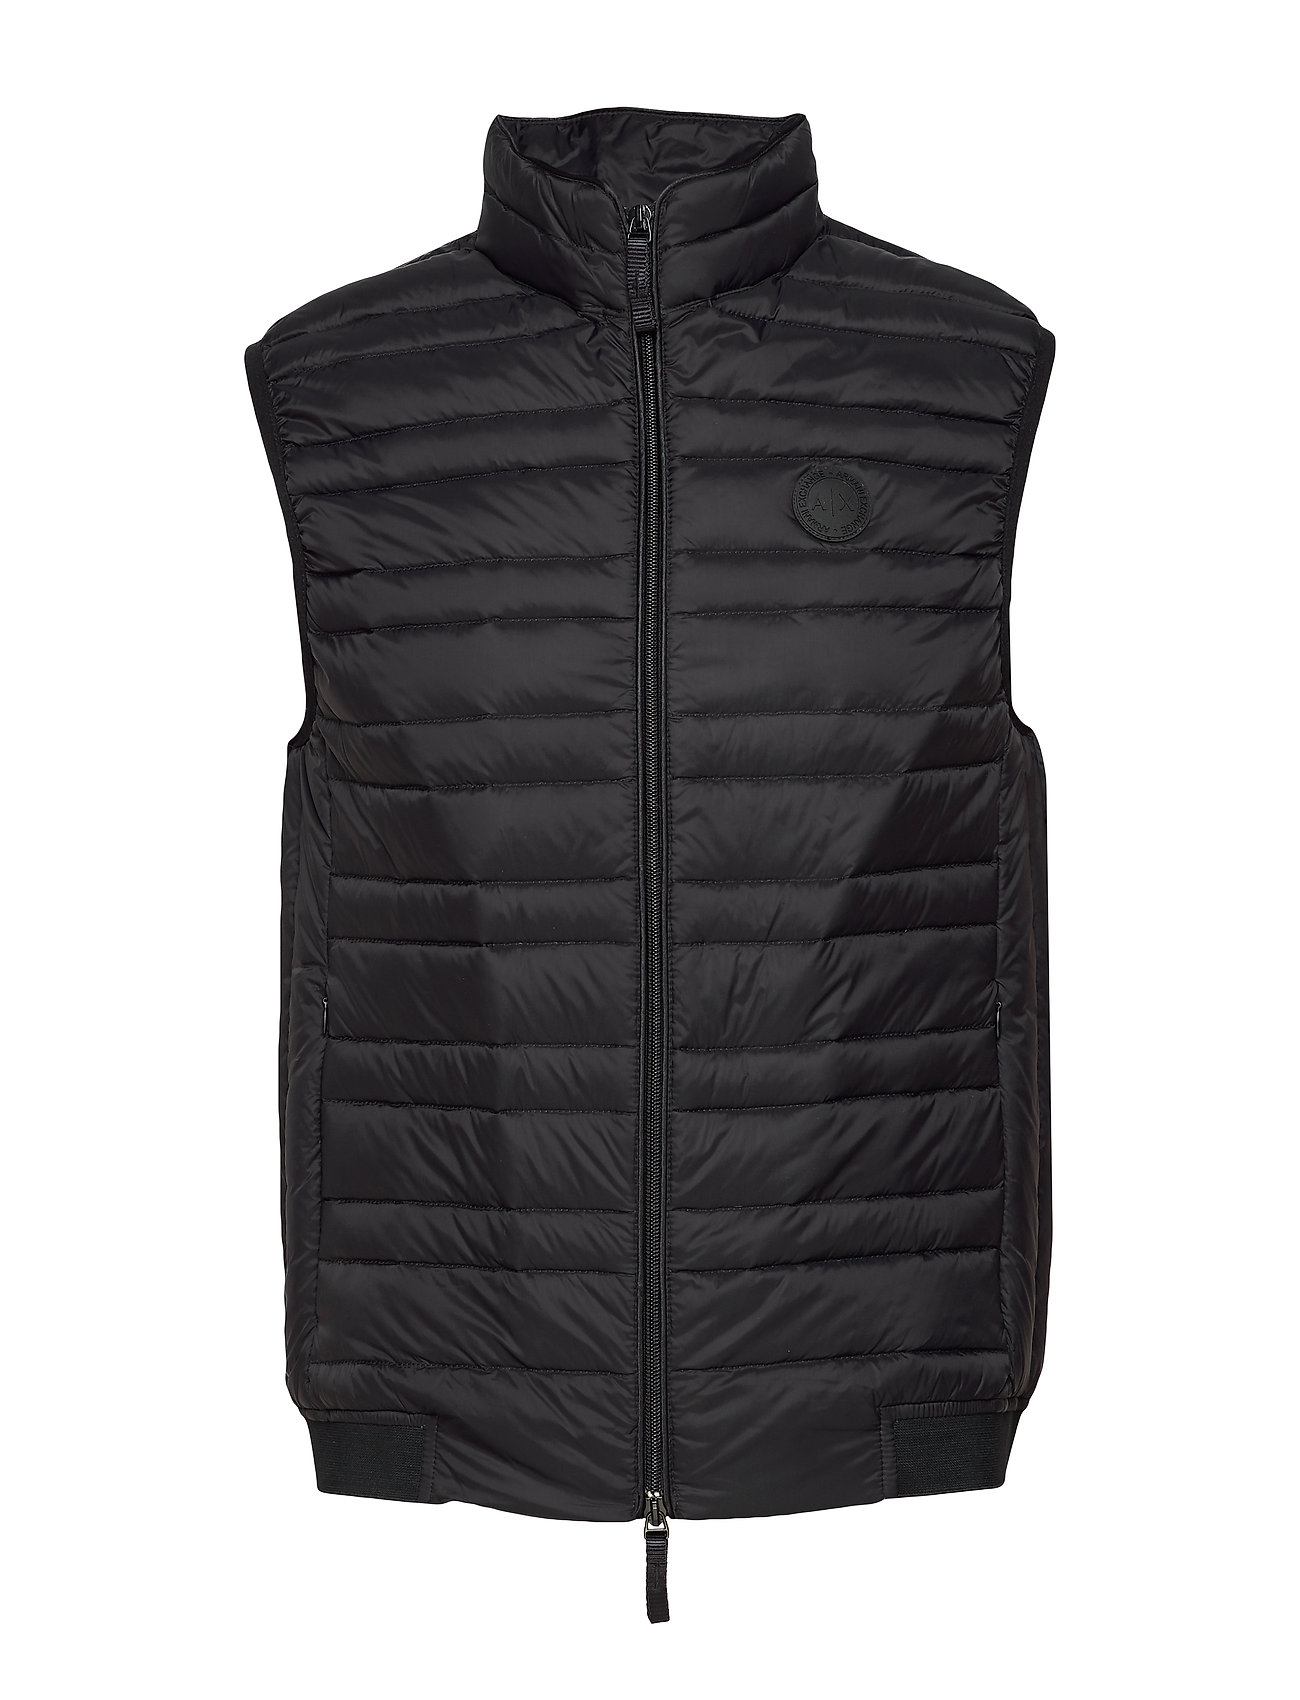 Image of Ax Man Sleeveless Jacket Vest Sort Armani Exchange (3359209569)